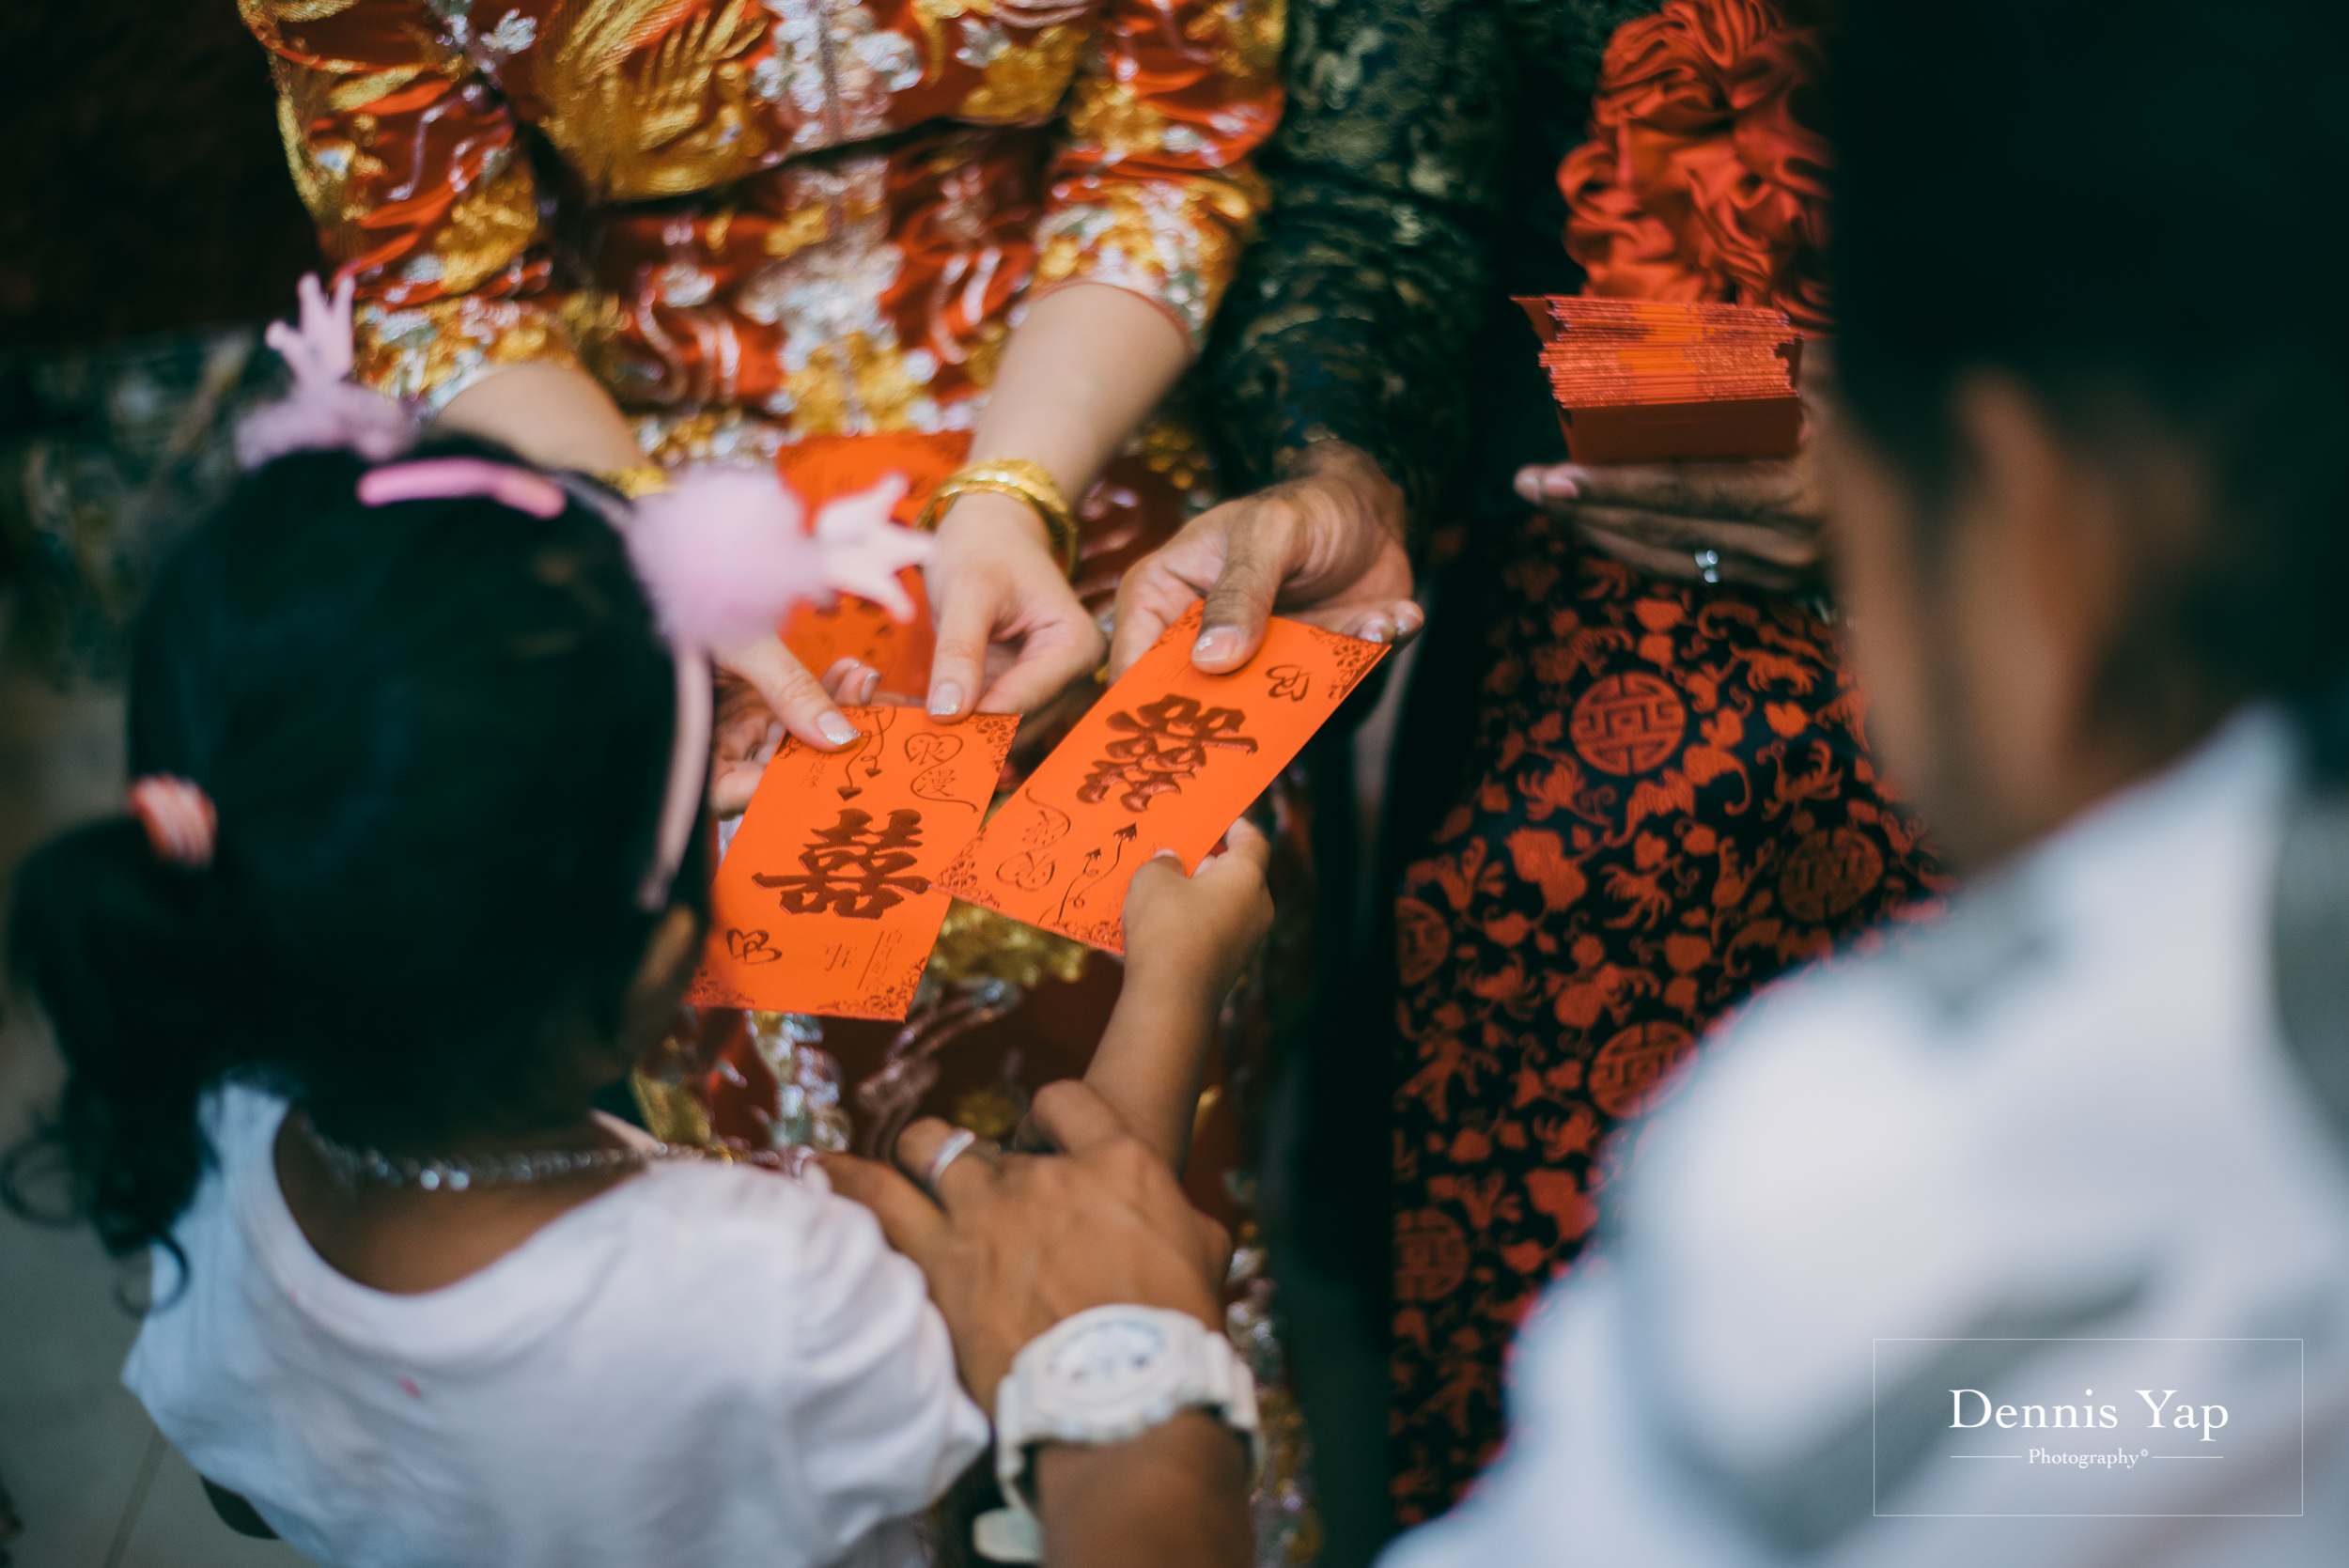 azmi zahraa wedding day gate crash traditional chinese and malay wedding dennis yap malaysia photographer-24.jpg